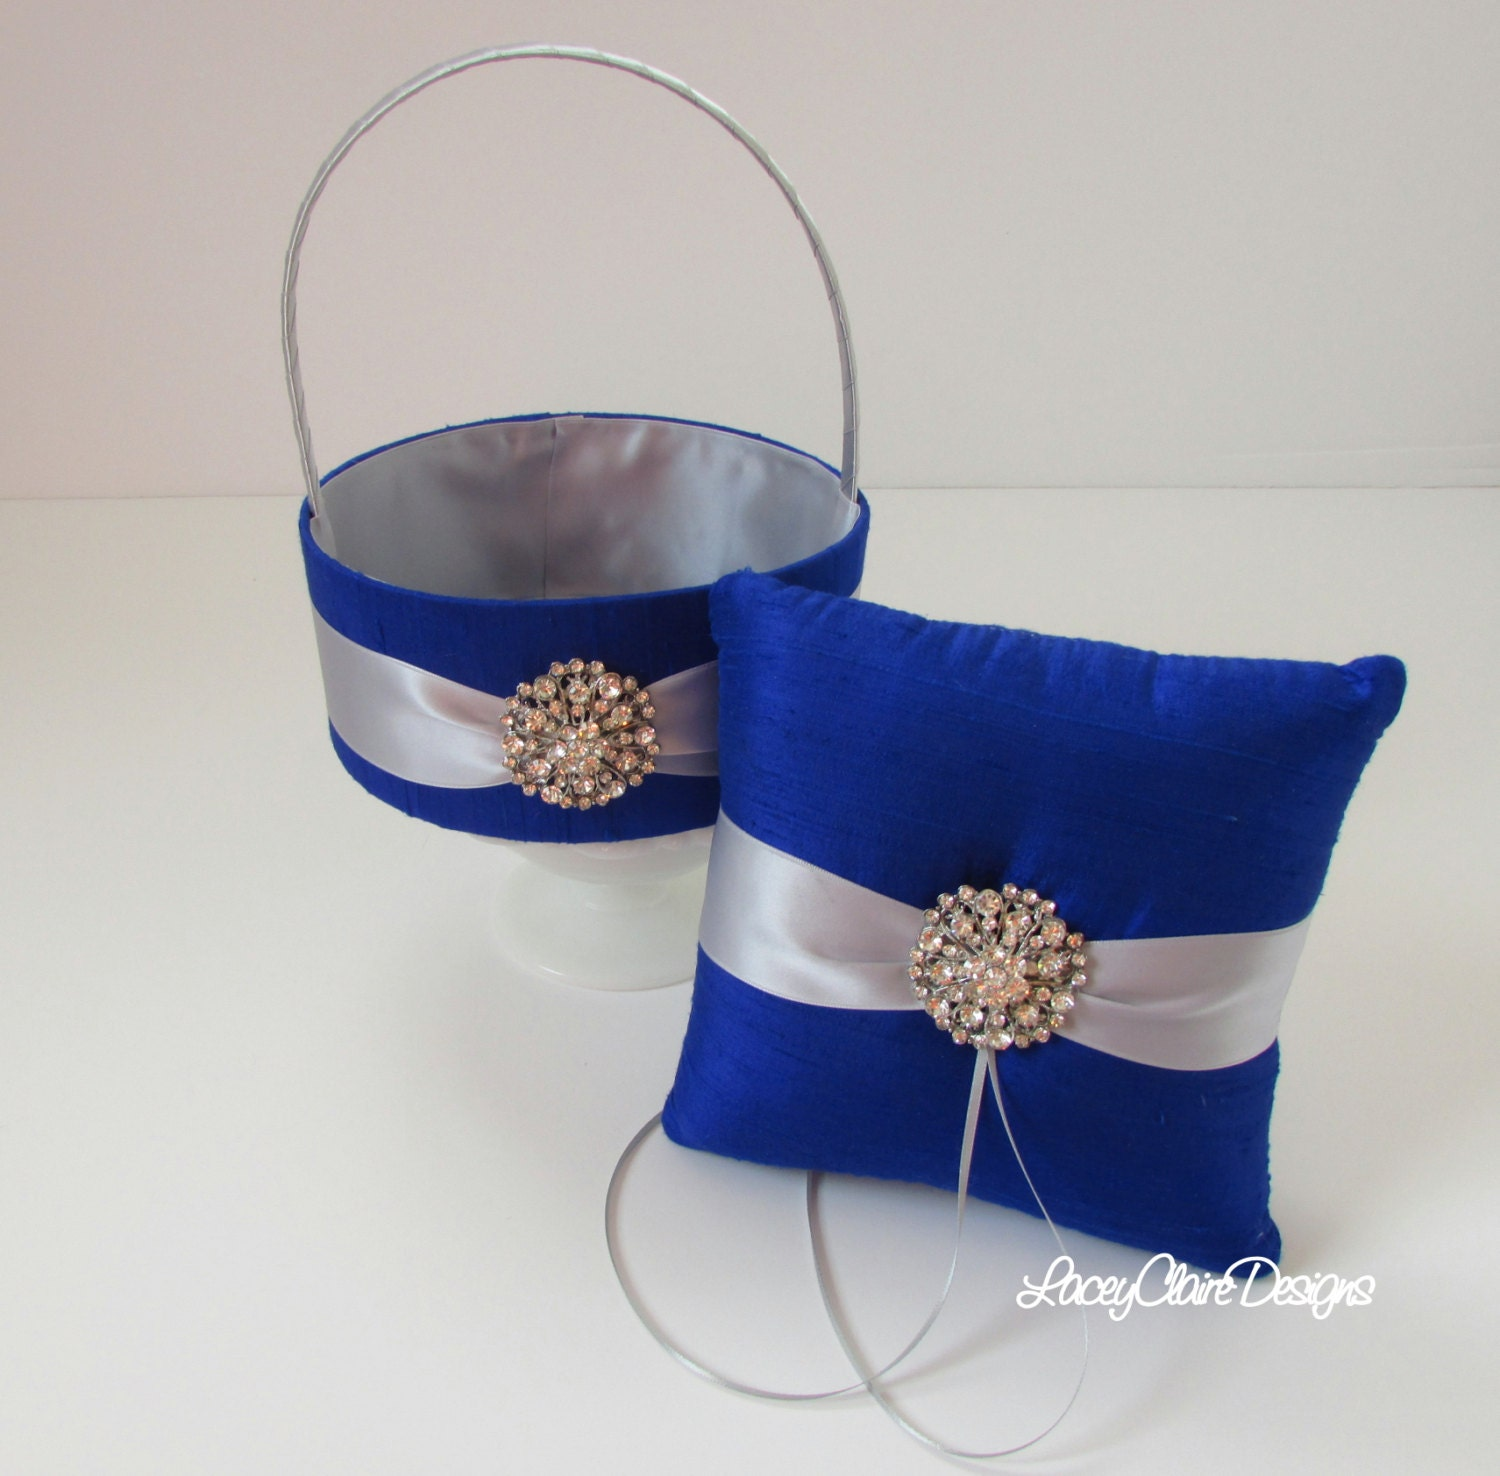 How To Make A Flower Girl Basket With Fabric : Ring bearer pillow and flower girl basket set custom made